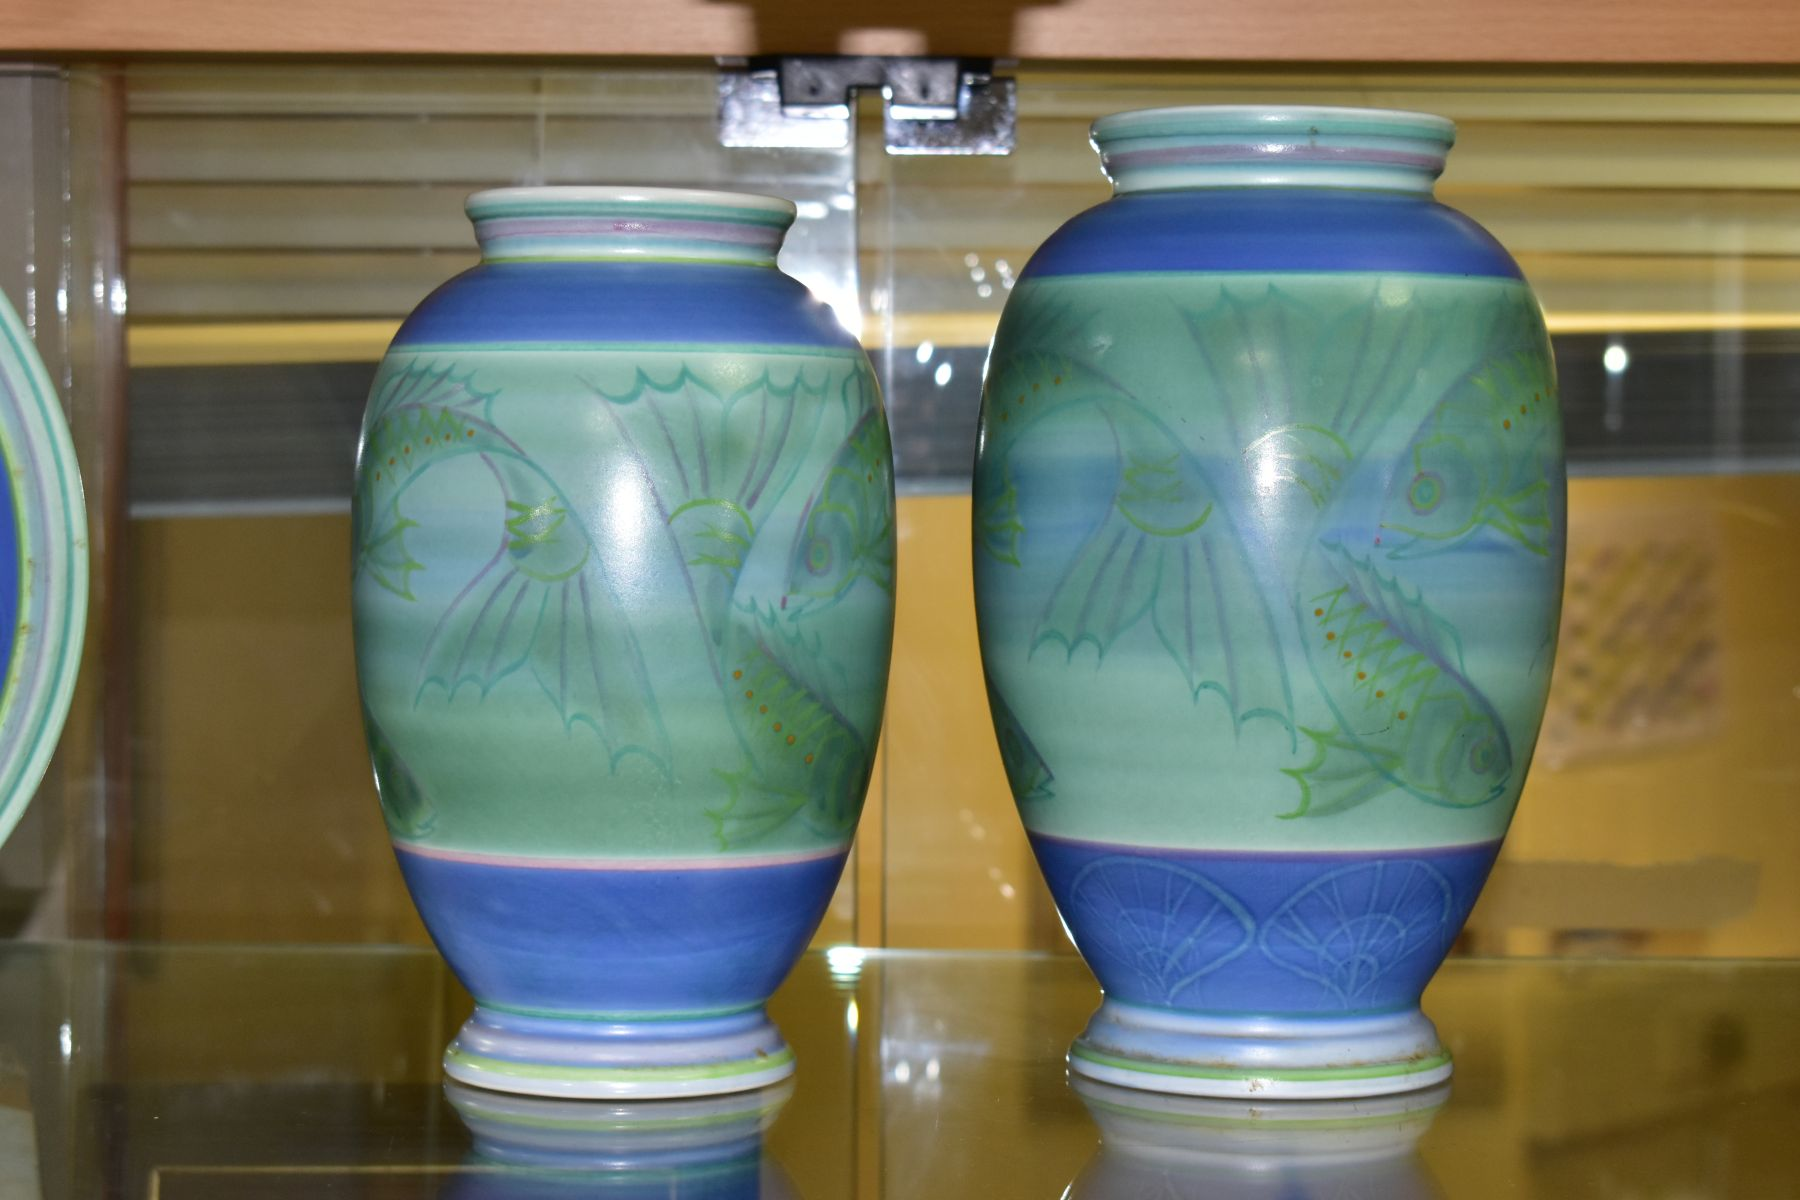 A POOLE STUDIO SALLY TUFFIN BALUSTER VASE AND MATCHING JAR, the baluster vase handpainted with bands - Image 4 of 7